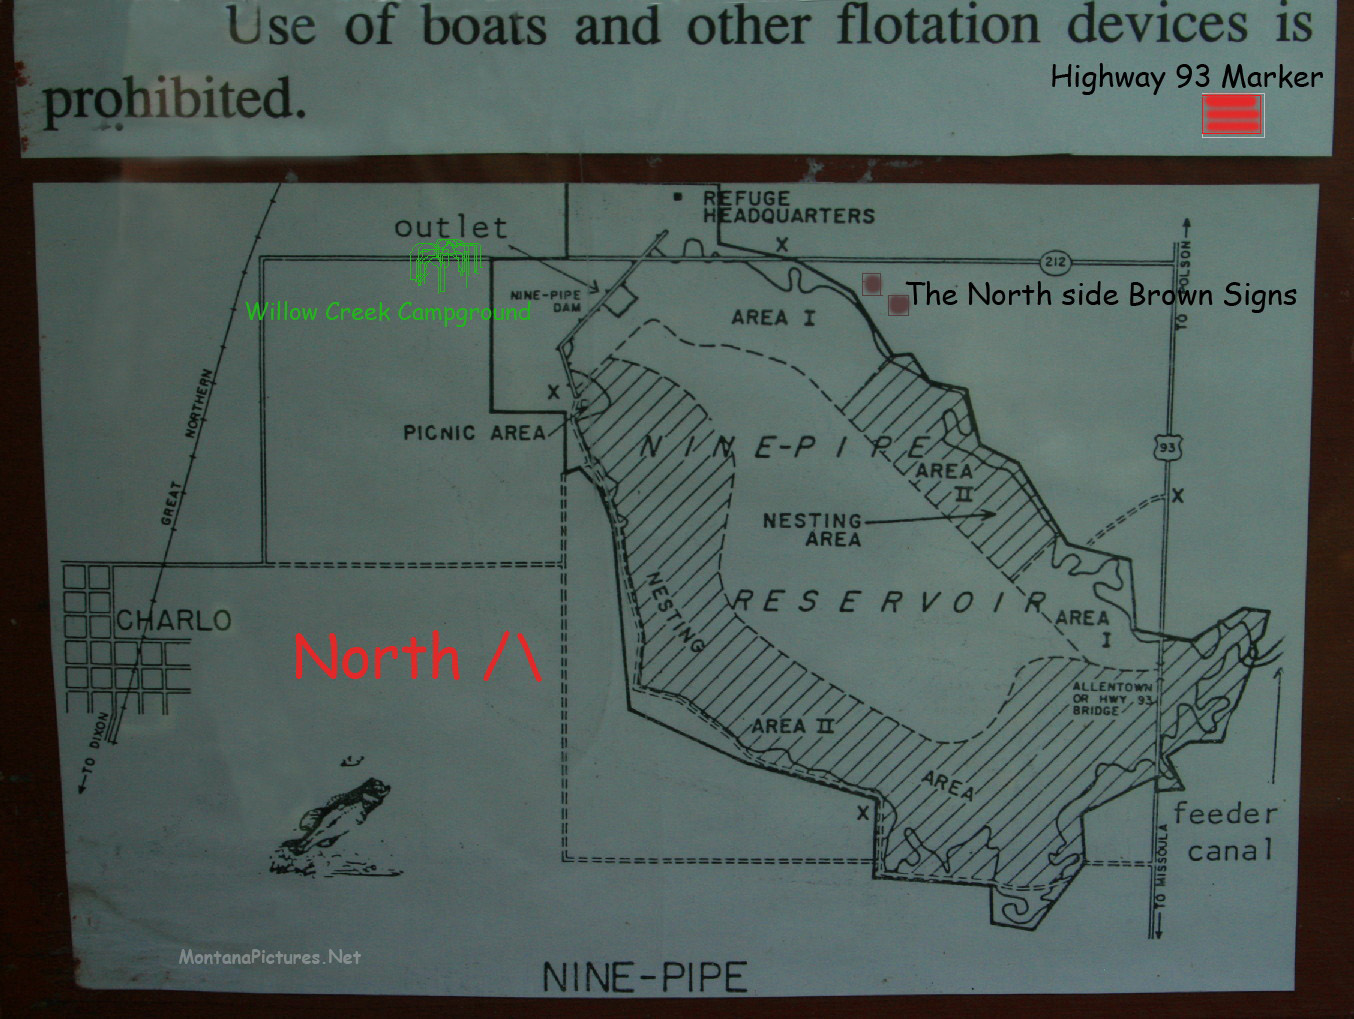 hight resolution of 51808 ninepipe 4506 kiosk map montanapictures net